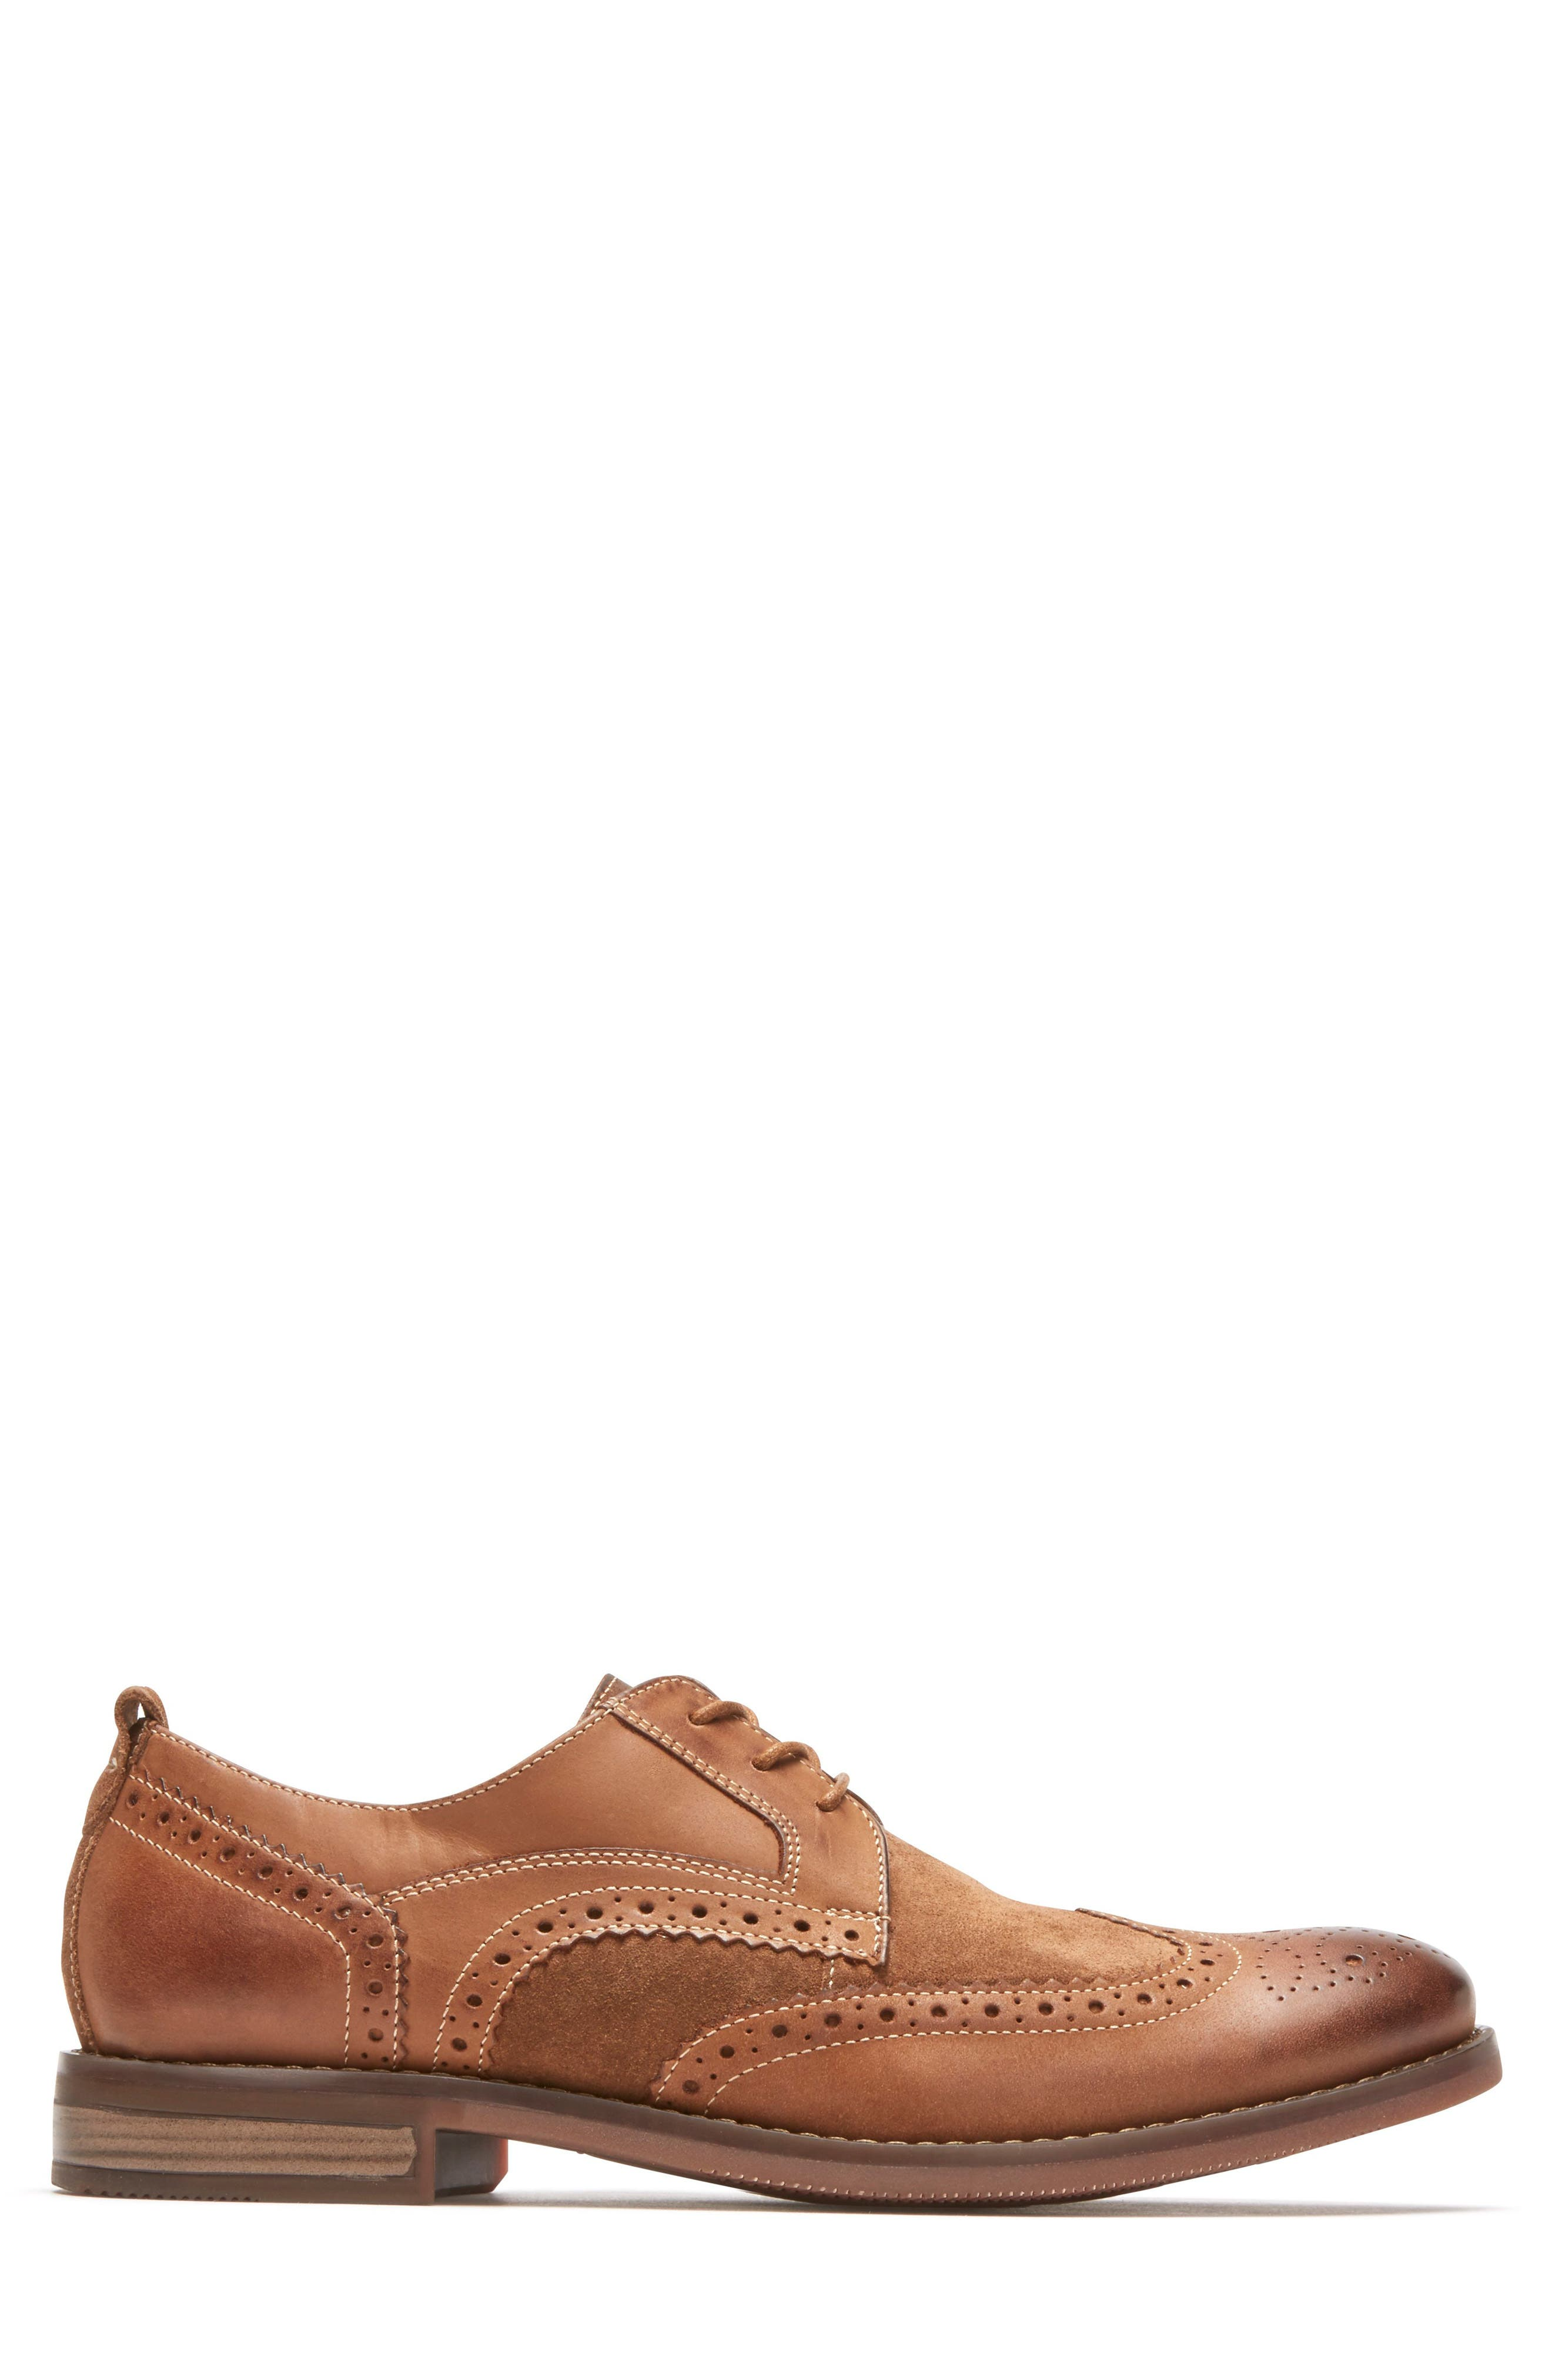 Wynstin Wingtip,                             Alternate thumbnail 3, color,                             Tobacco Leather/ Suede